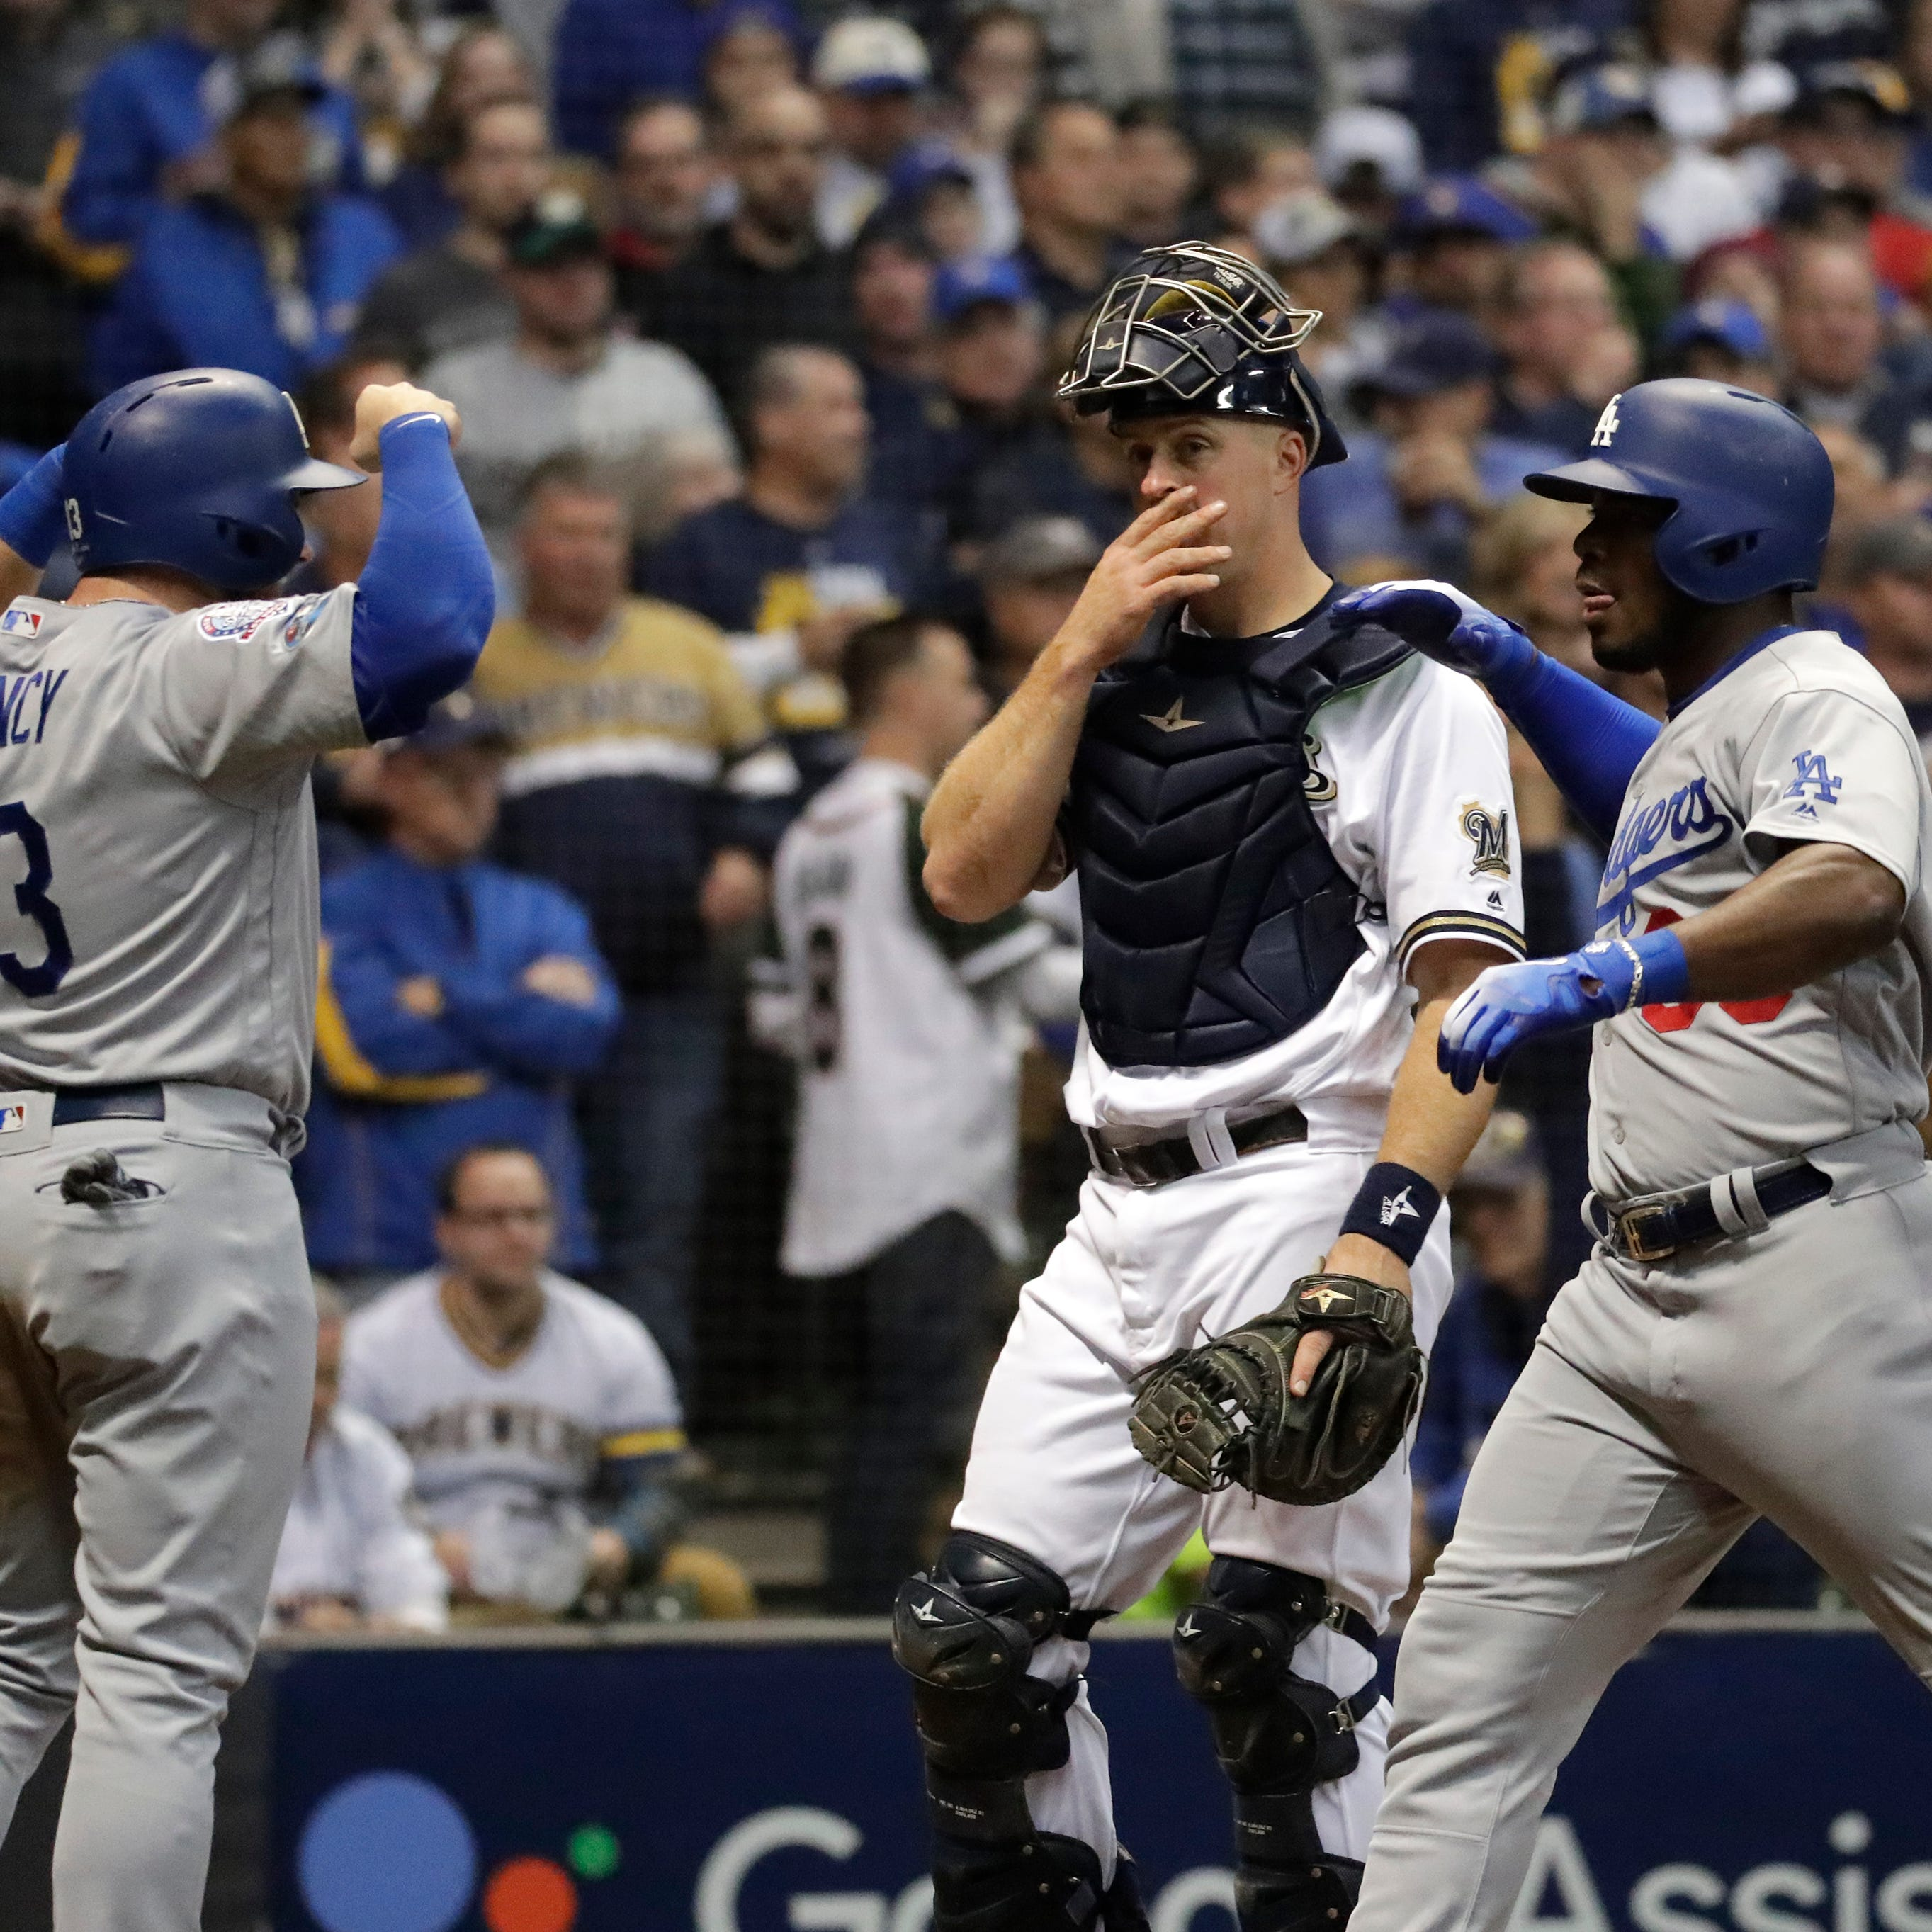 Dodgers 5, Brewers 1: A magical ride ends in the NLCS, but the future holds great hope